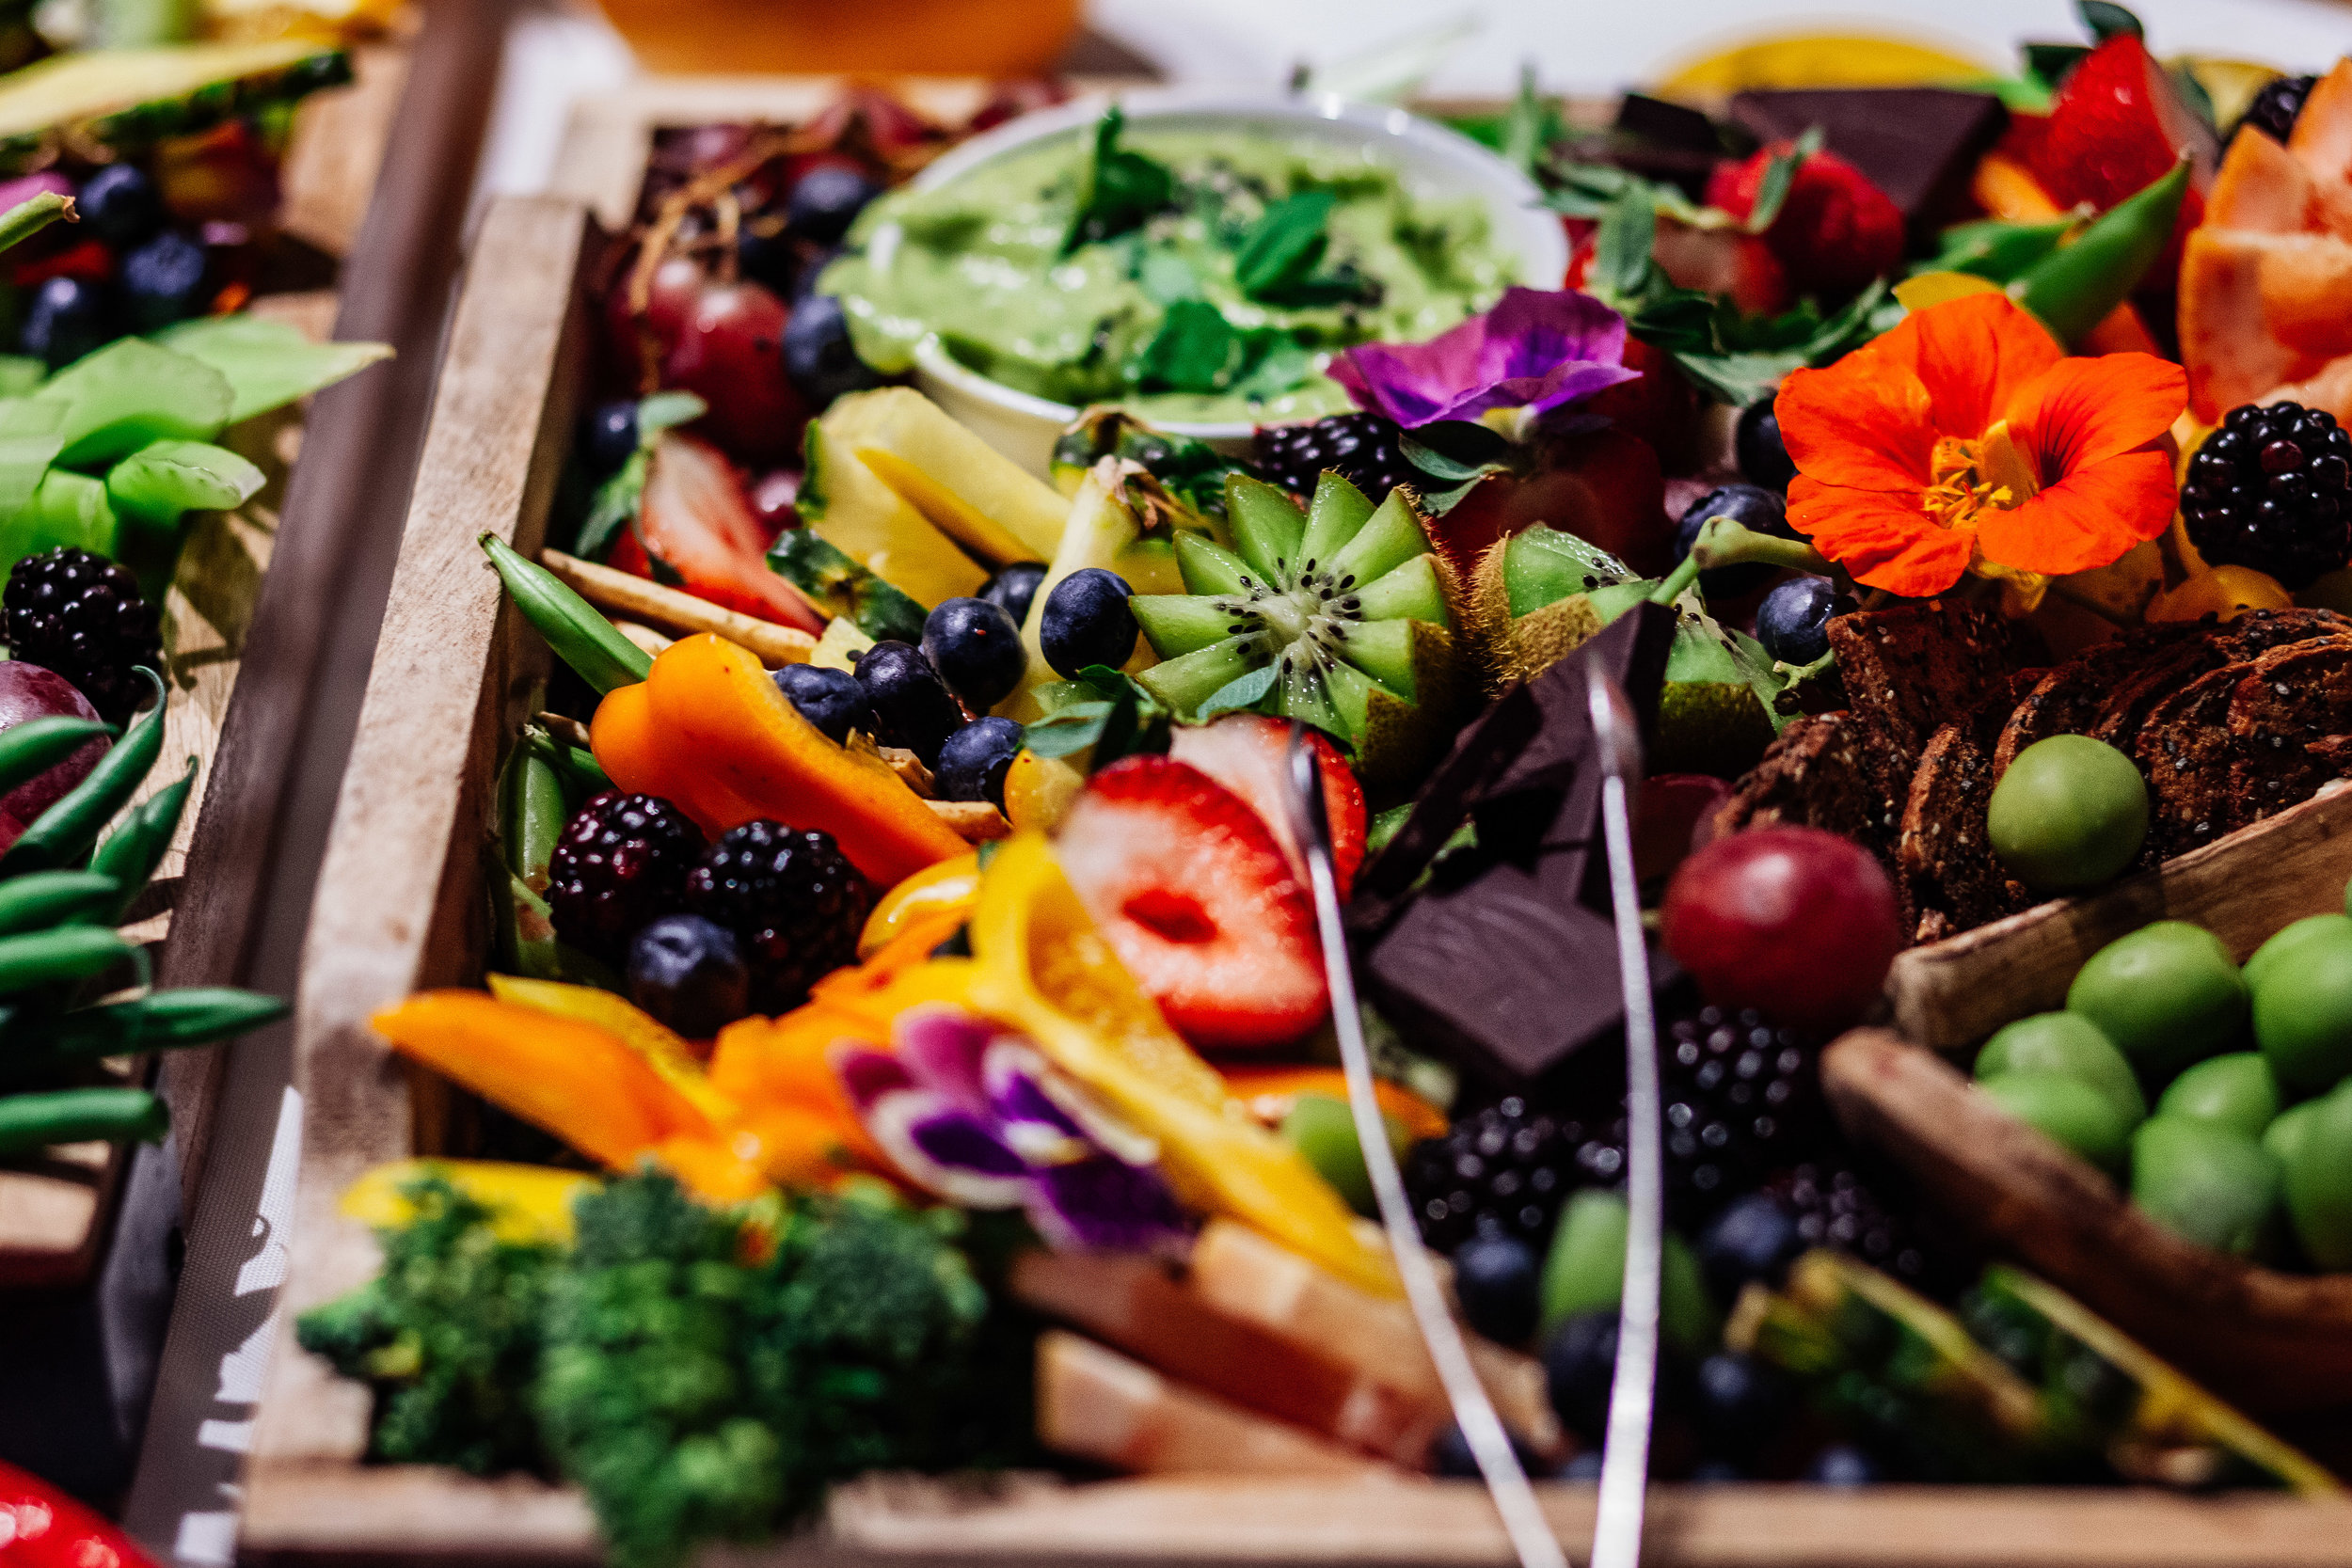 What food could nourish your body and your senses? No matter what eating protocol you are currently working on what food could you build into your week that would nourish and bring joy?